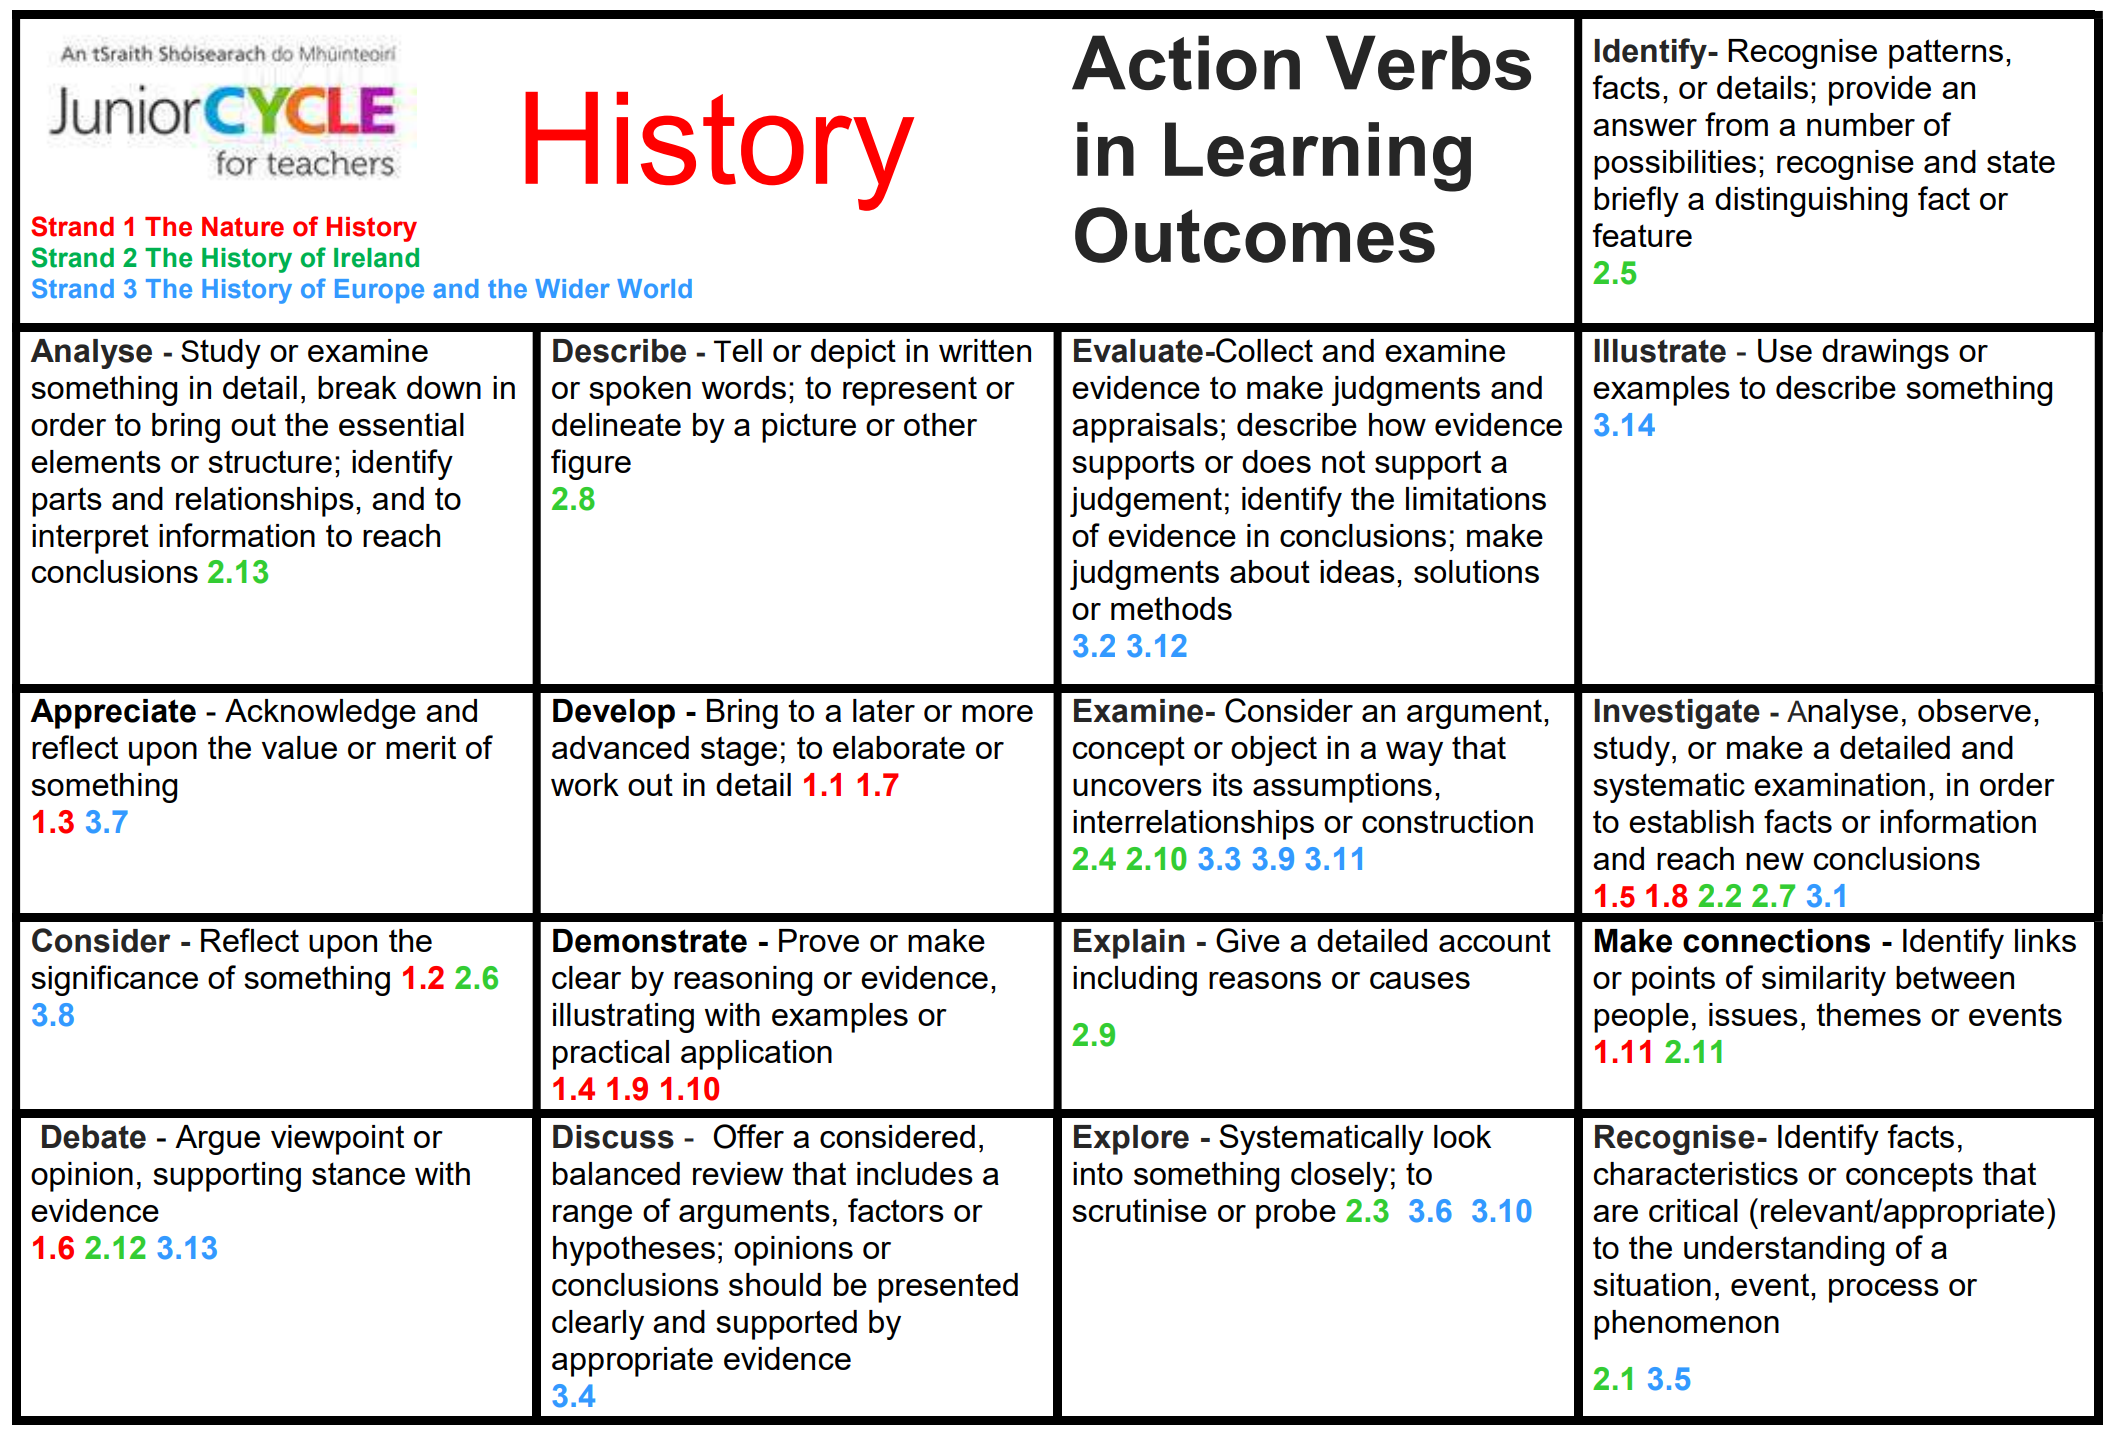 Action Verbs in Learning Outcomes.pdf